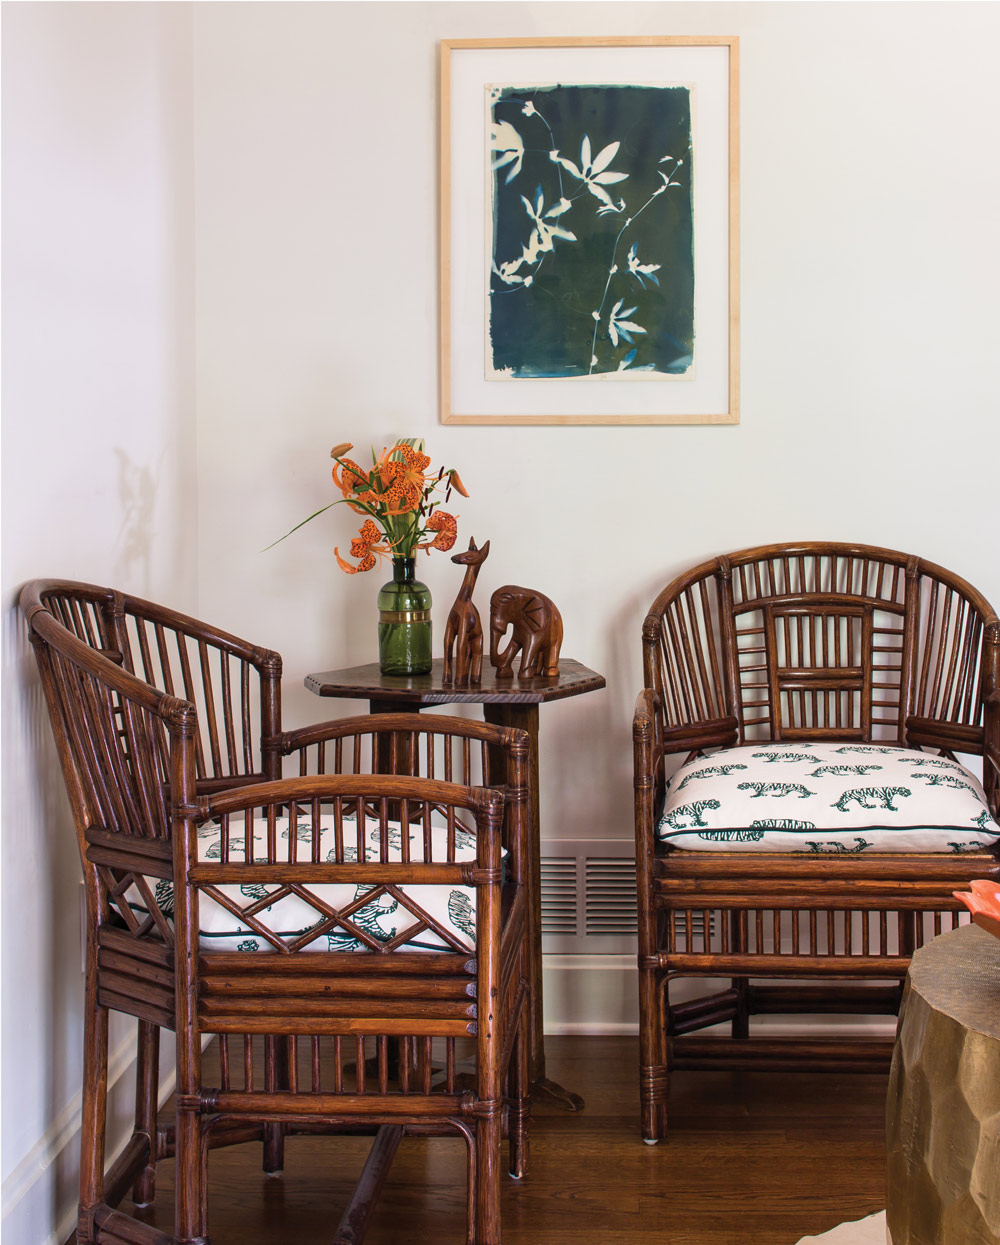 The tiger print on the chairs is by Athens-based Block and Brayer. Foliage paintings are by local artist Rinne Allen.